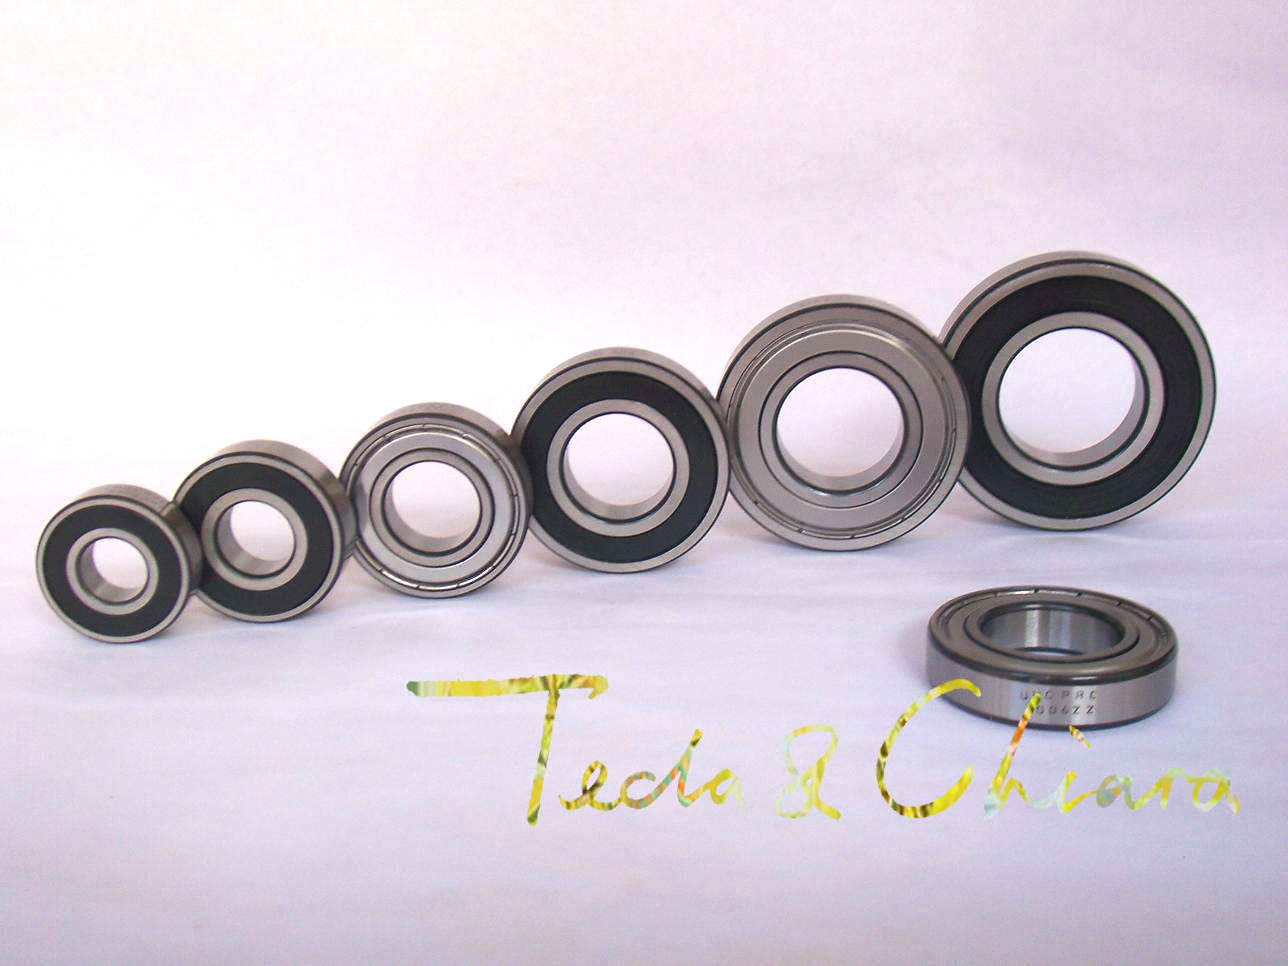 1PC Bearings 6008 RS 2RS Rubber Sealed Deep Groove Ball Bearing 40 x 68 x 15mm